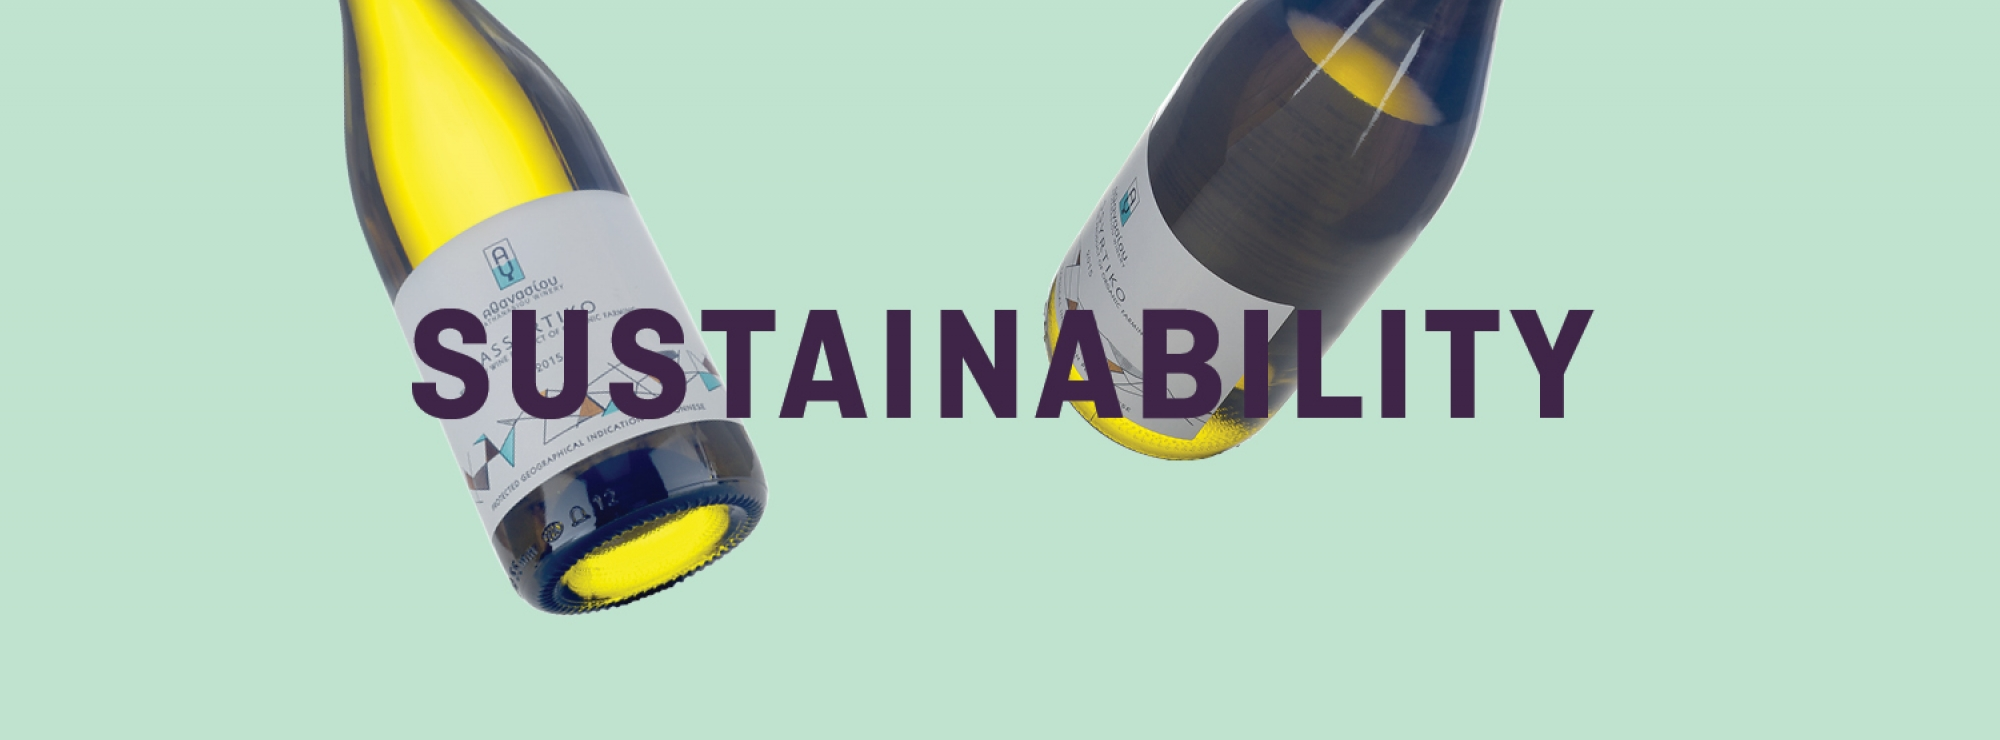 Sustainability - Optimised